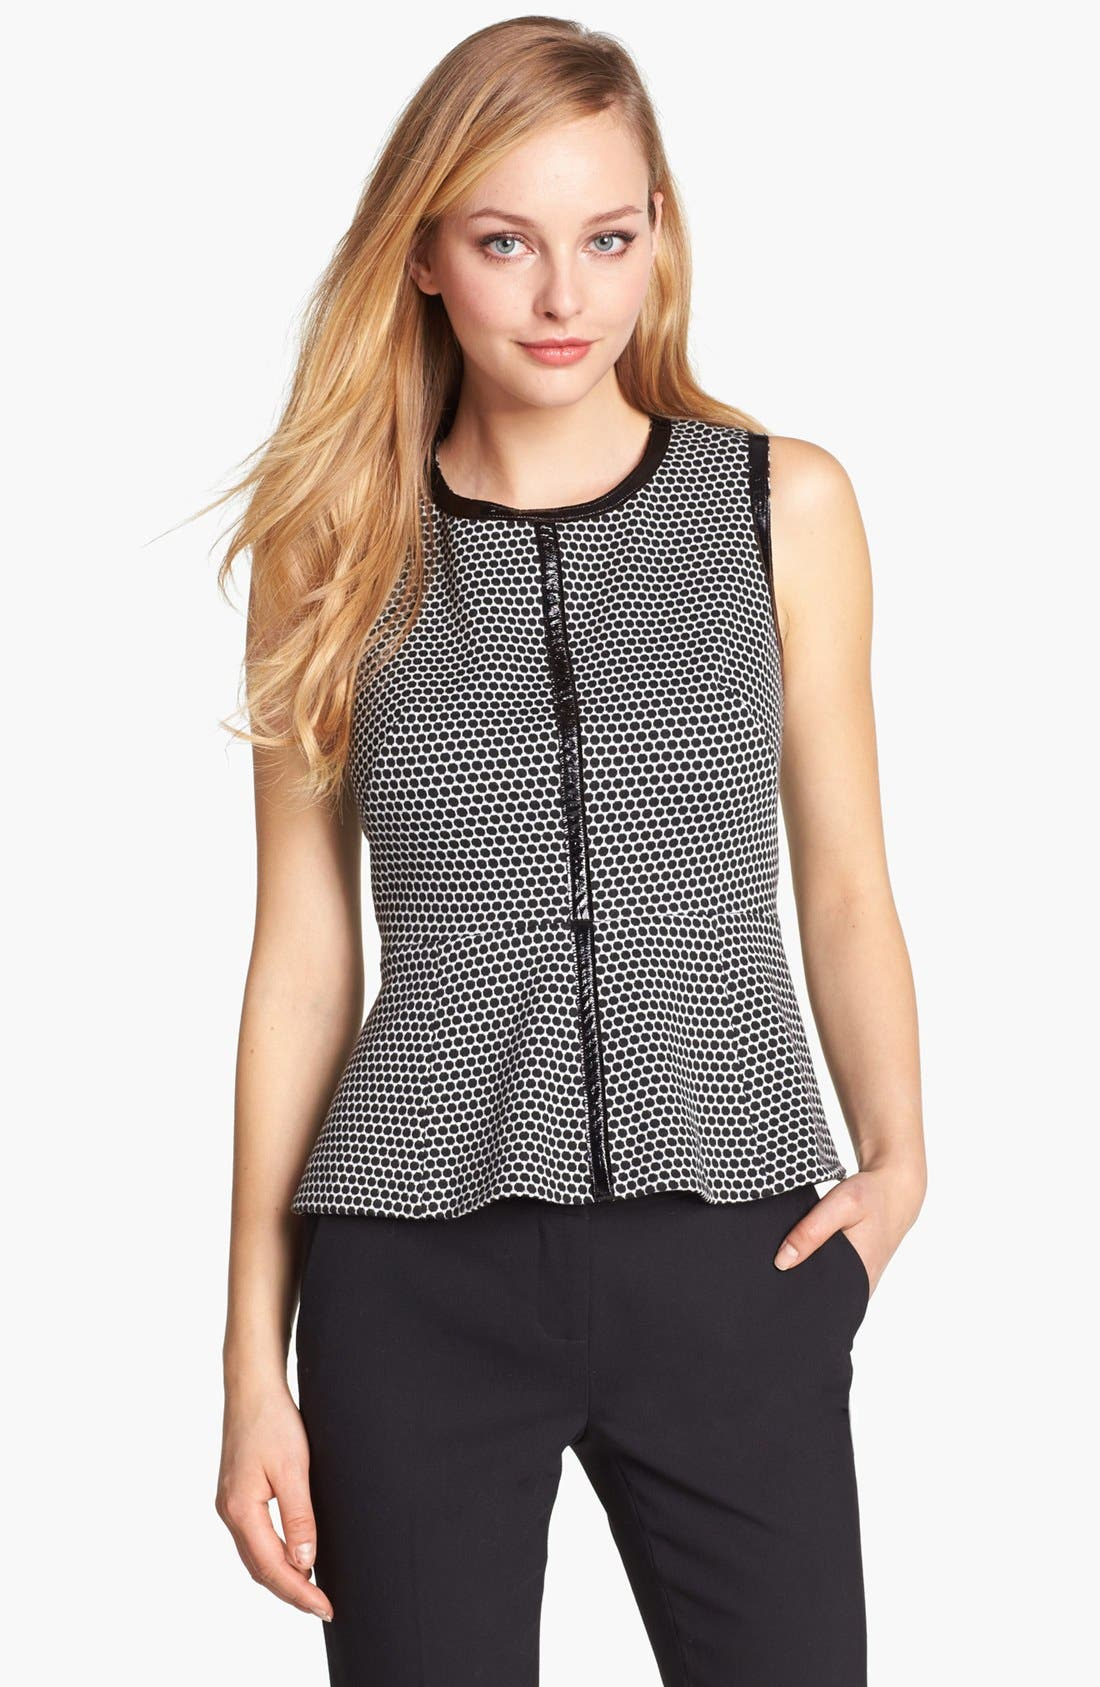 Alternate Image 1 Selected - Vince Camuto Faux Leather Trim Peplum Top (Online Only)